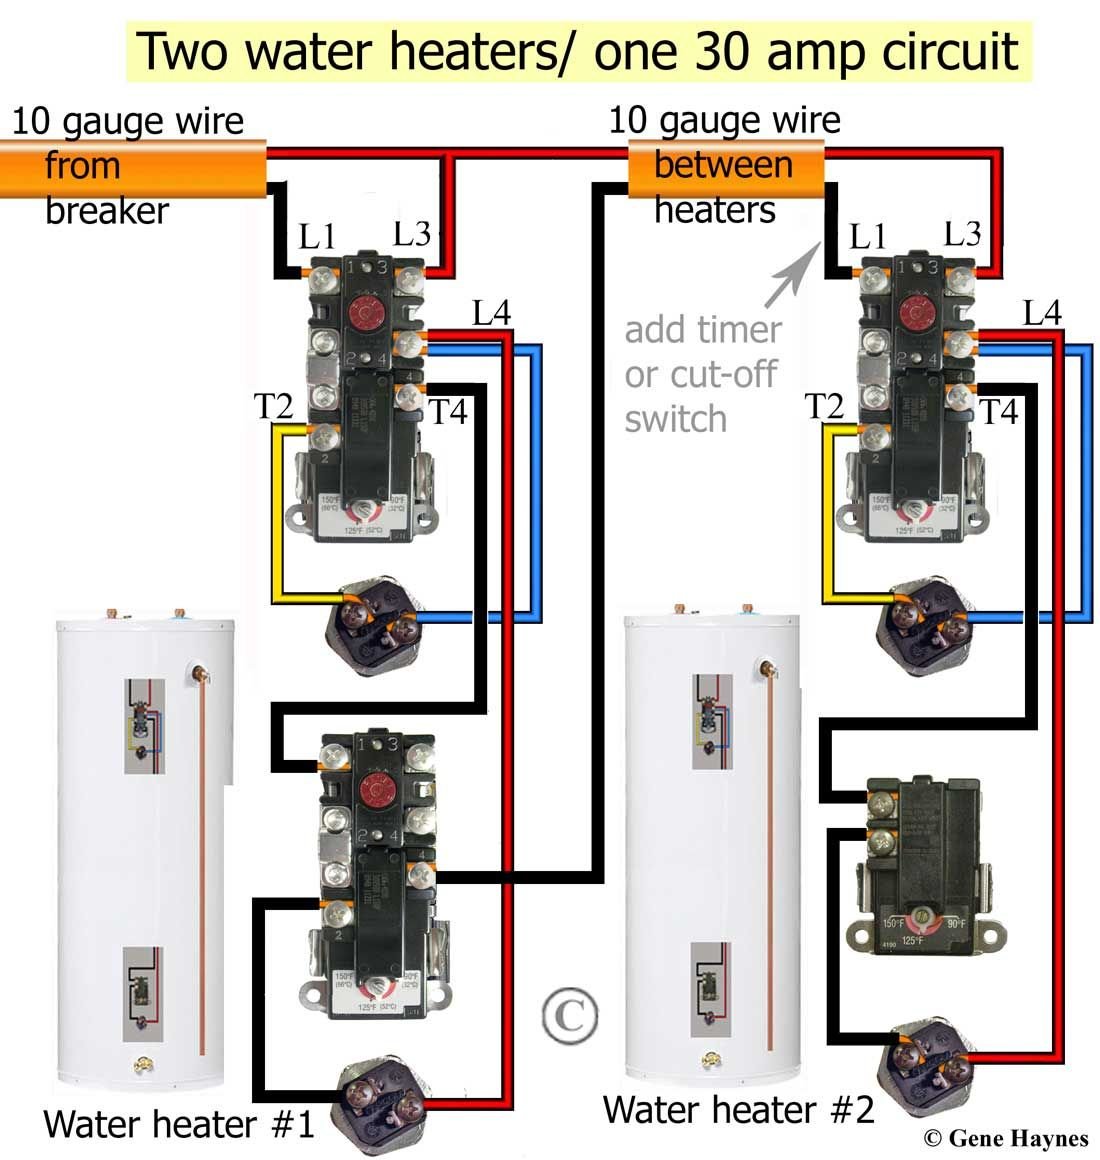 Wiring Diagram For Electric Water Heater Water heater